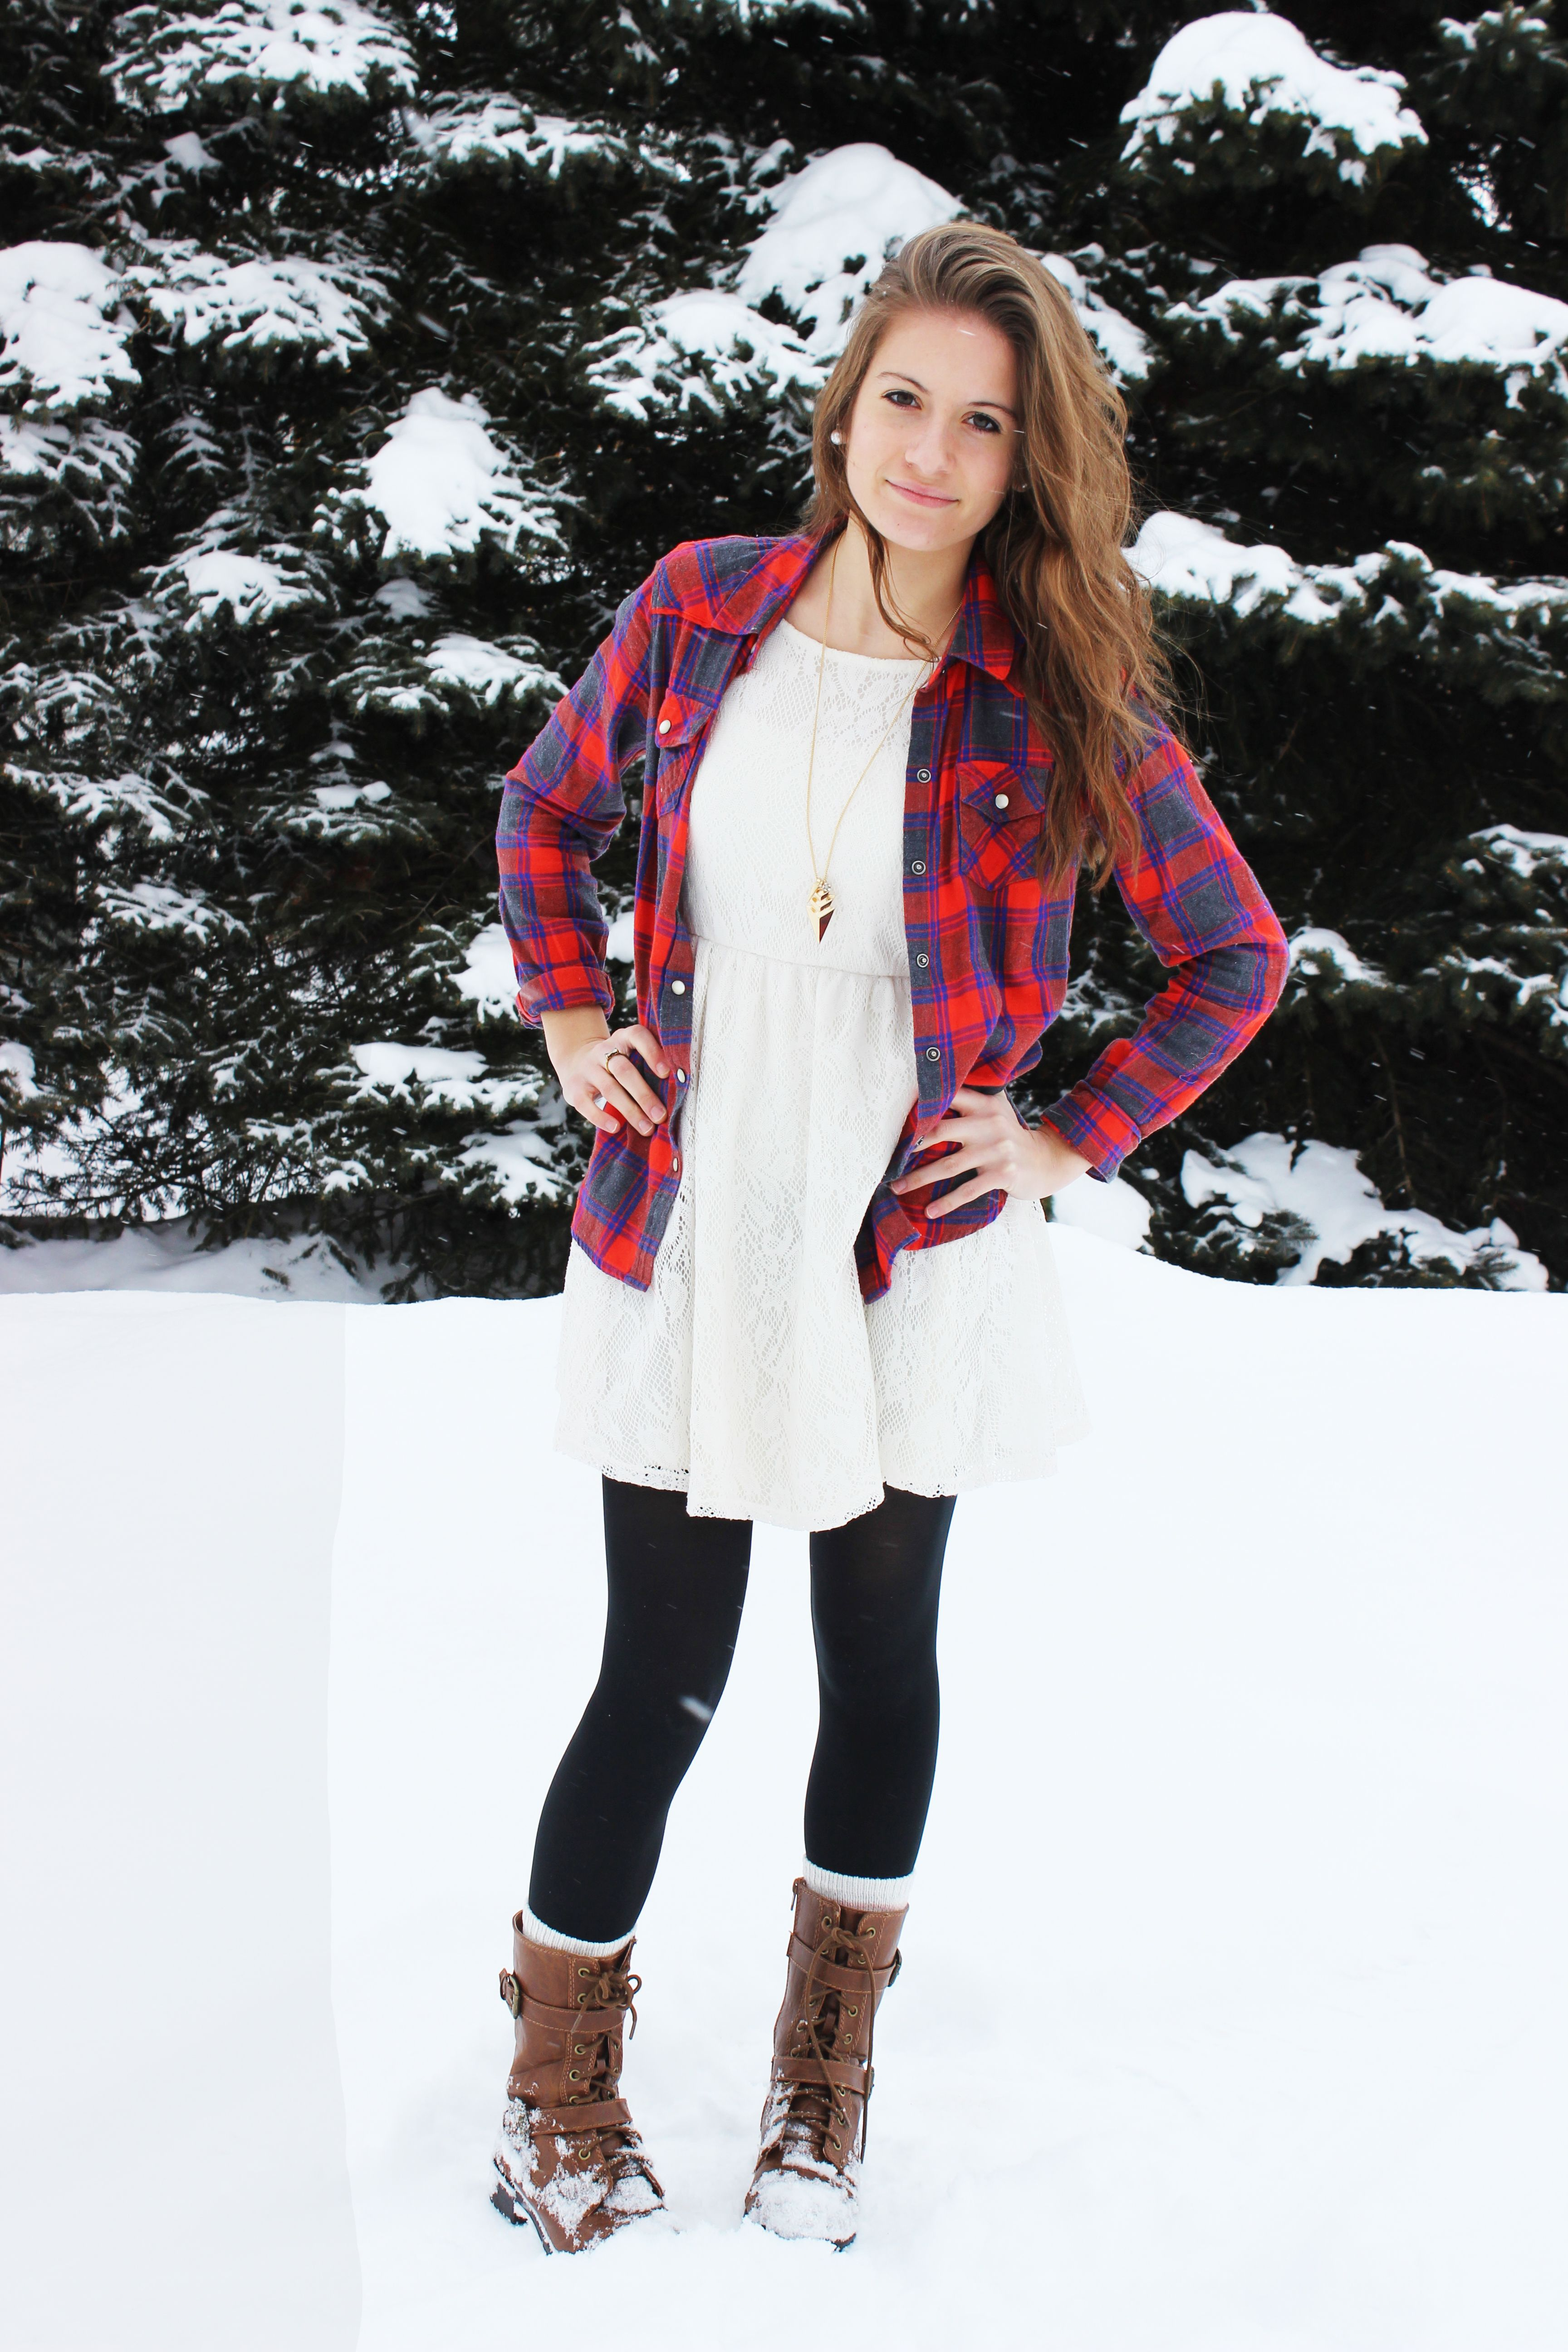 Fashion style How to summer wear outfits in winter for girls